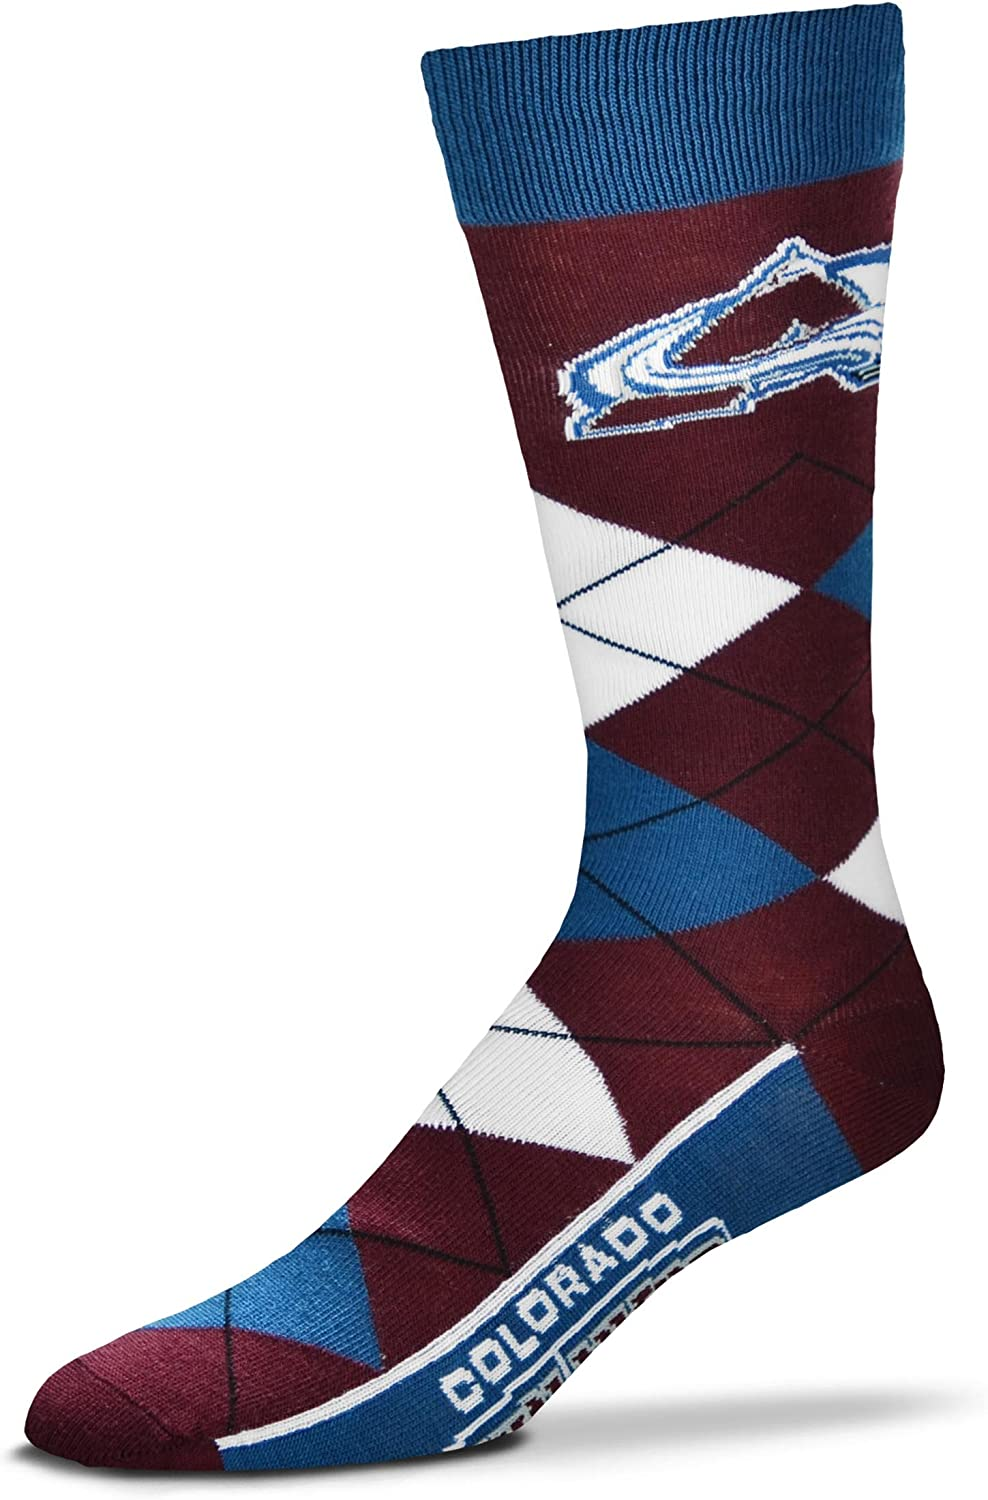 For Bare Feet NHL Argyle Lineup Unisex Crew Dress Socks-One Size Fits Most-Colorado Avalanche